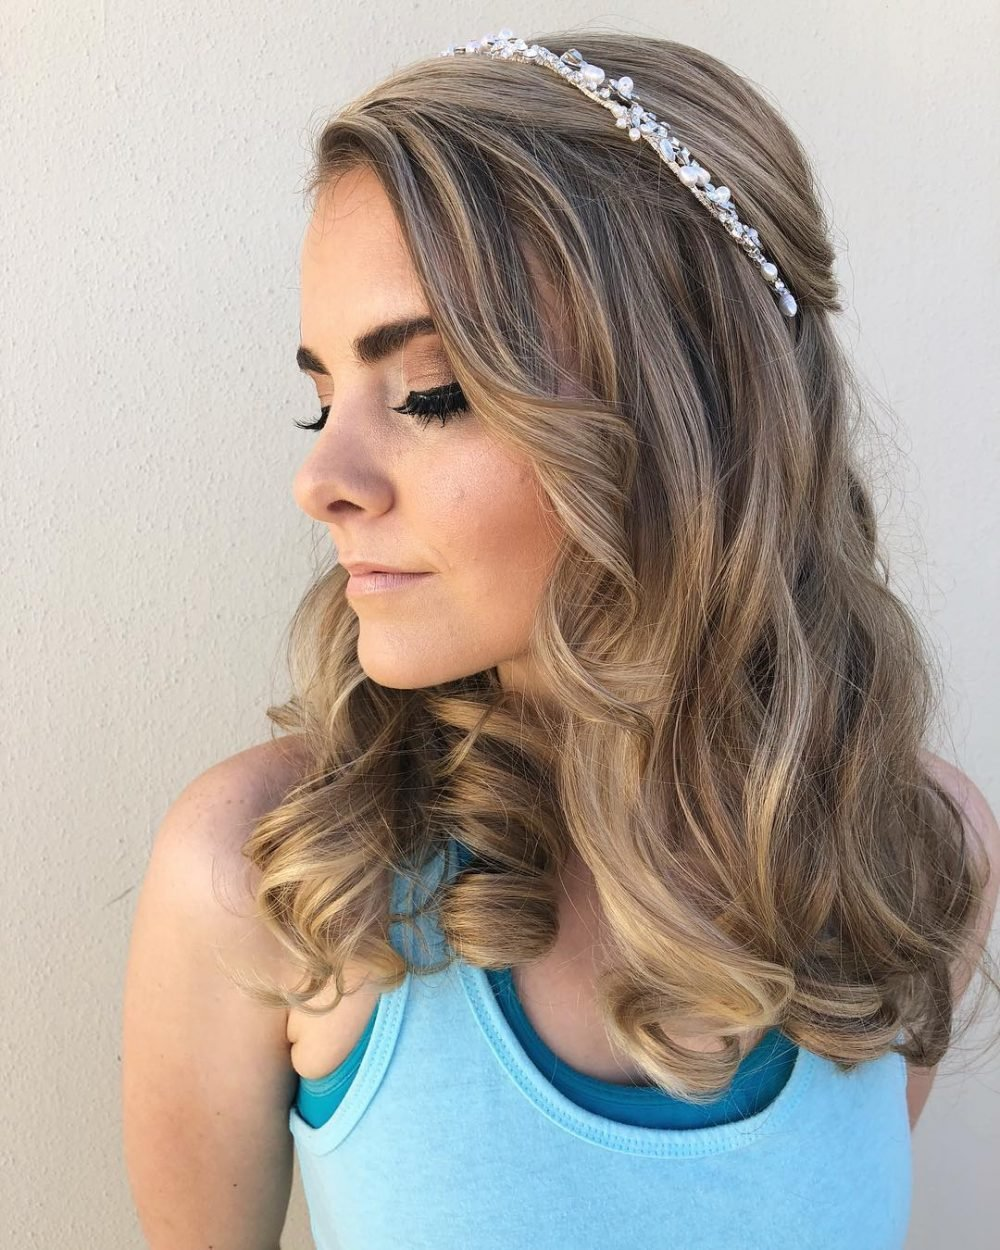 New 29 Cutest Prom Hairstyles For Medium Length Hair For 2019 Ideas With Pictures